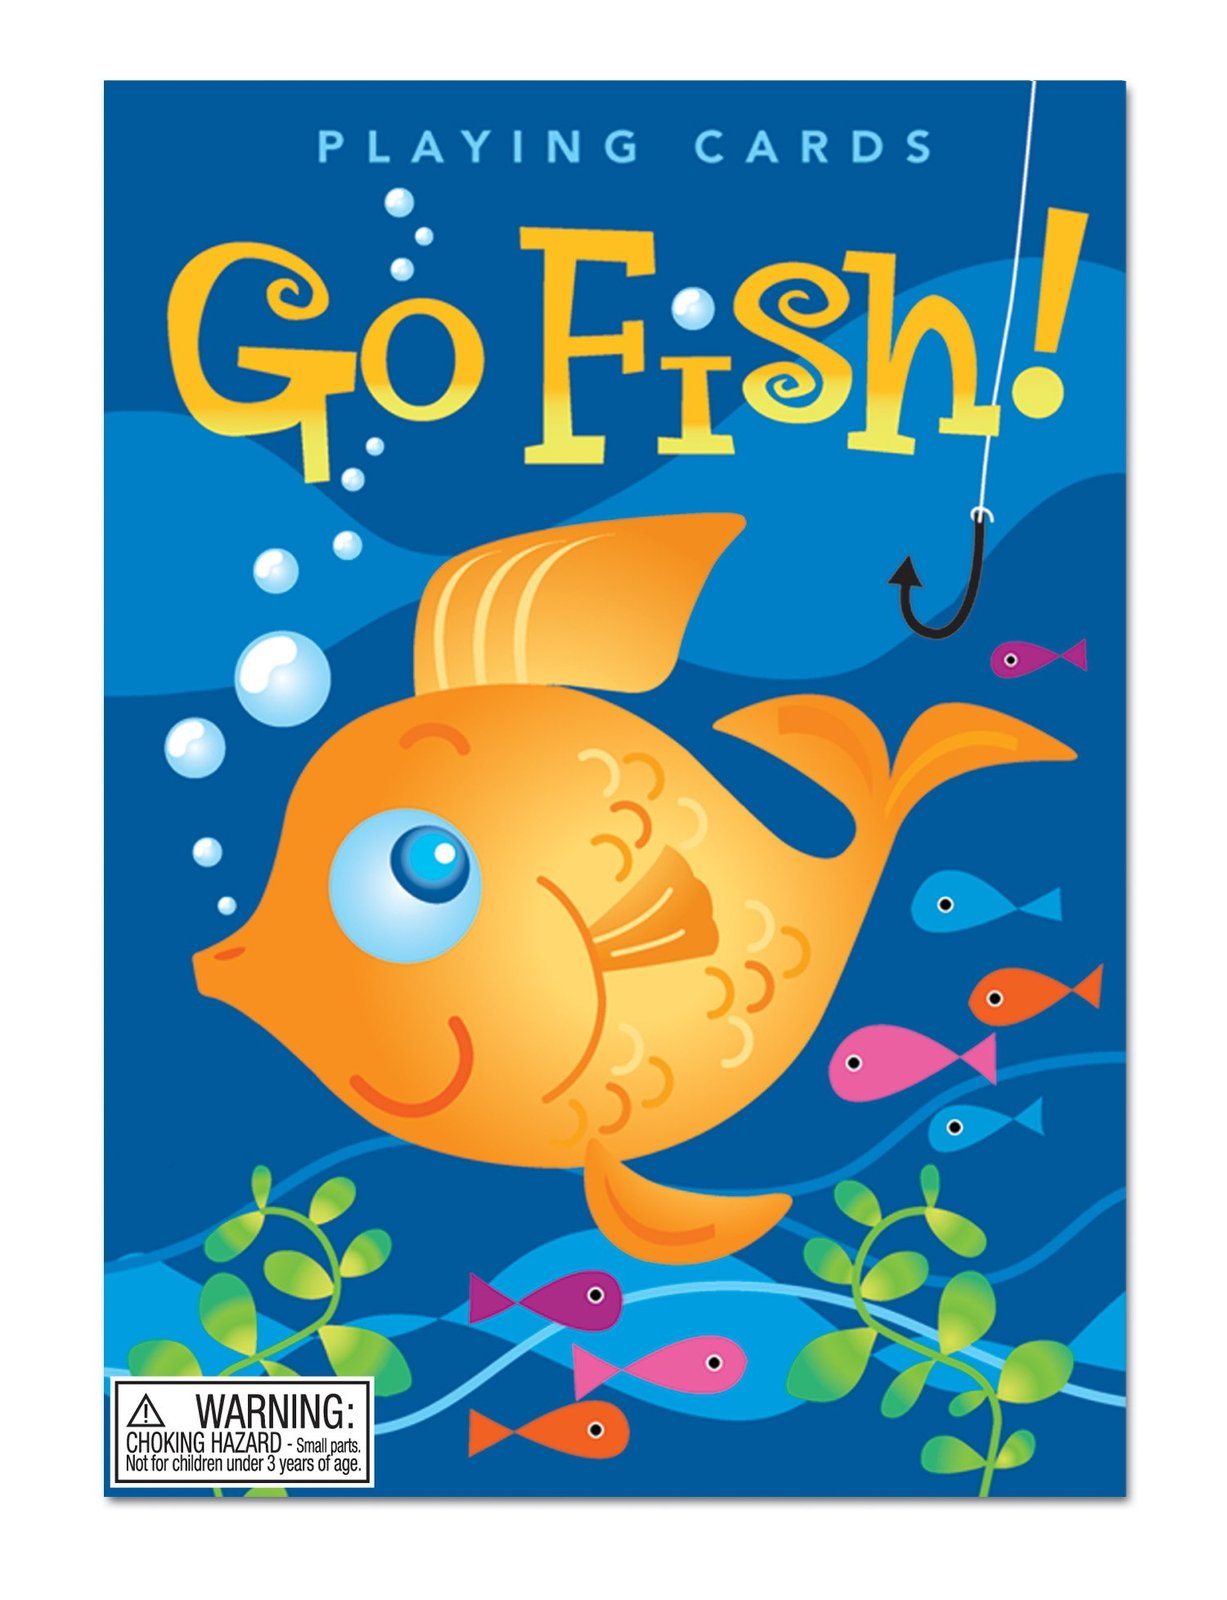 Wgr refocus and top games of all time windsor gaming for Go fish instructions